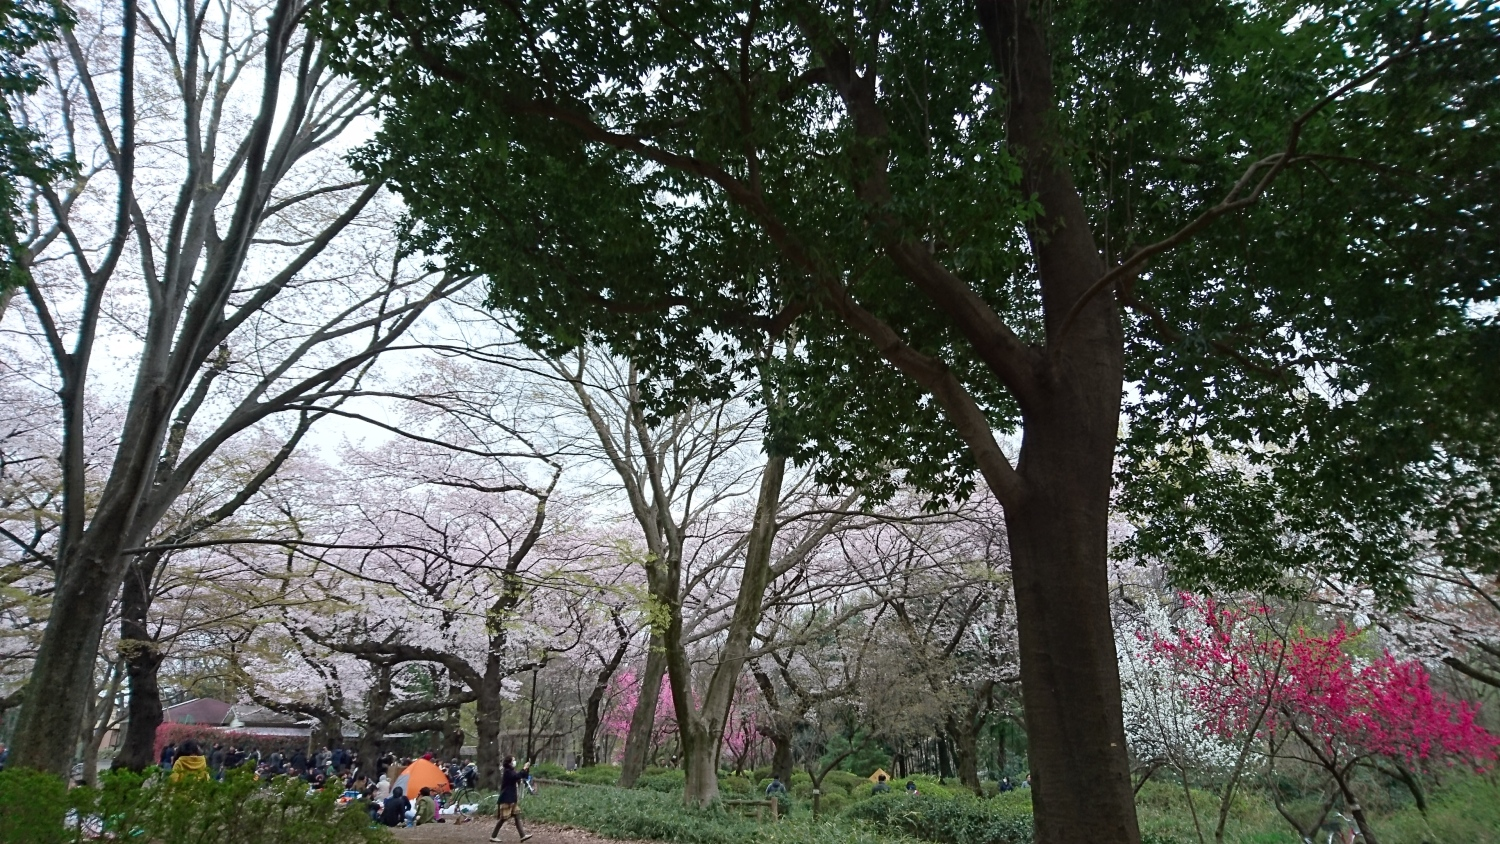 Cherry blossoms of Shakujii Park